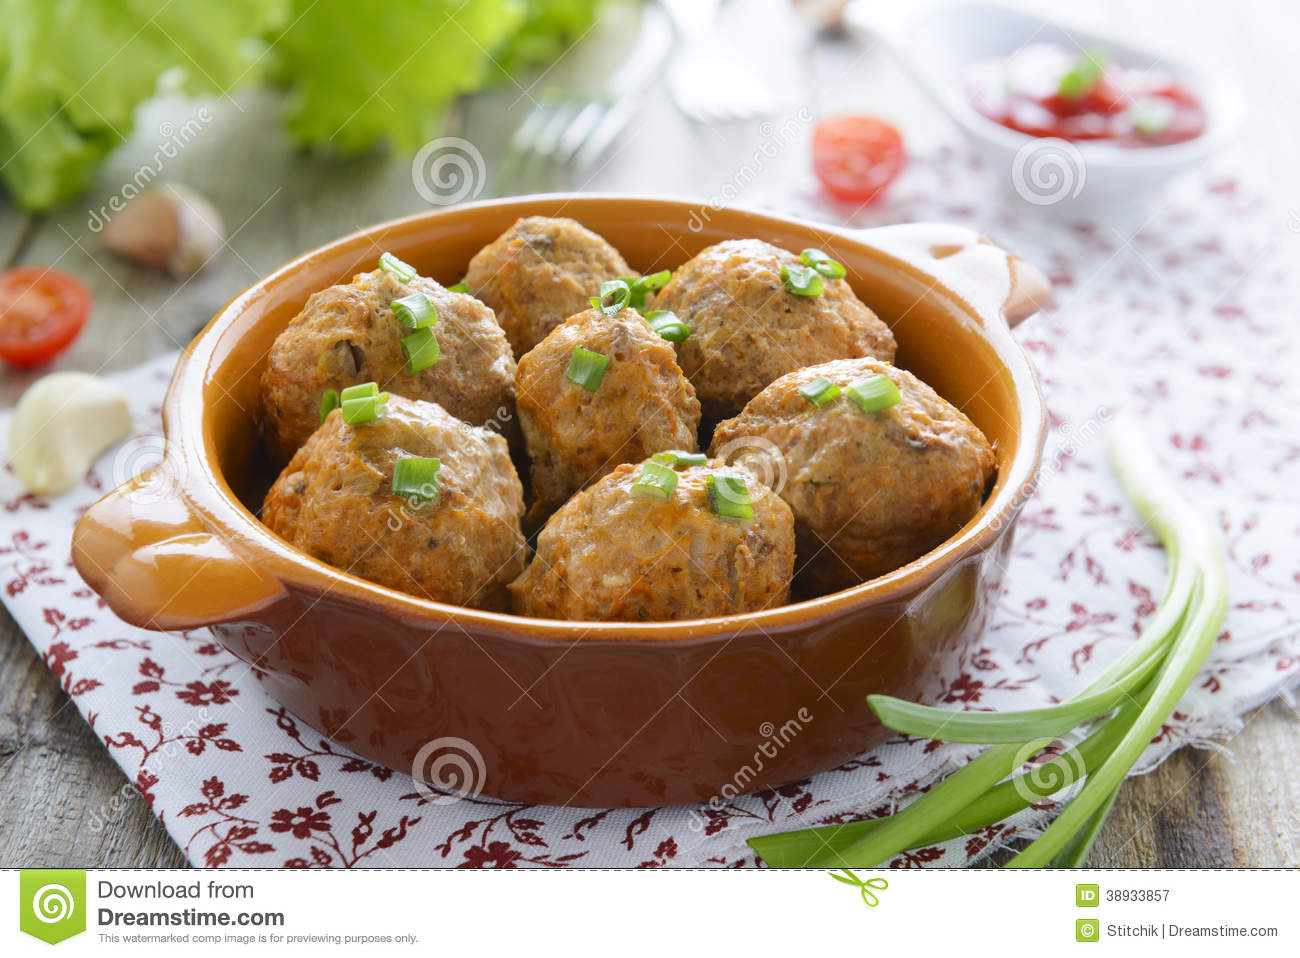 Meatballs and chive